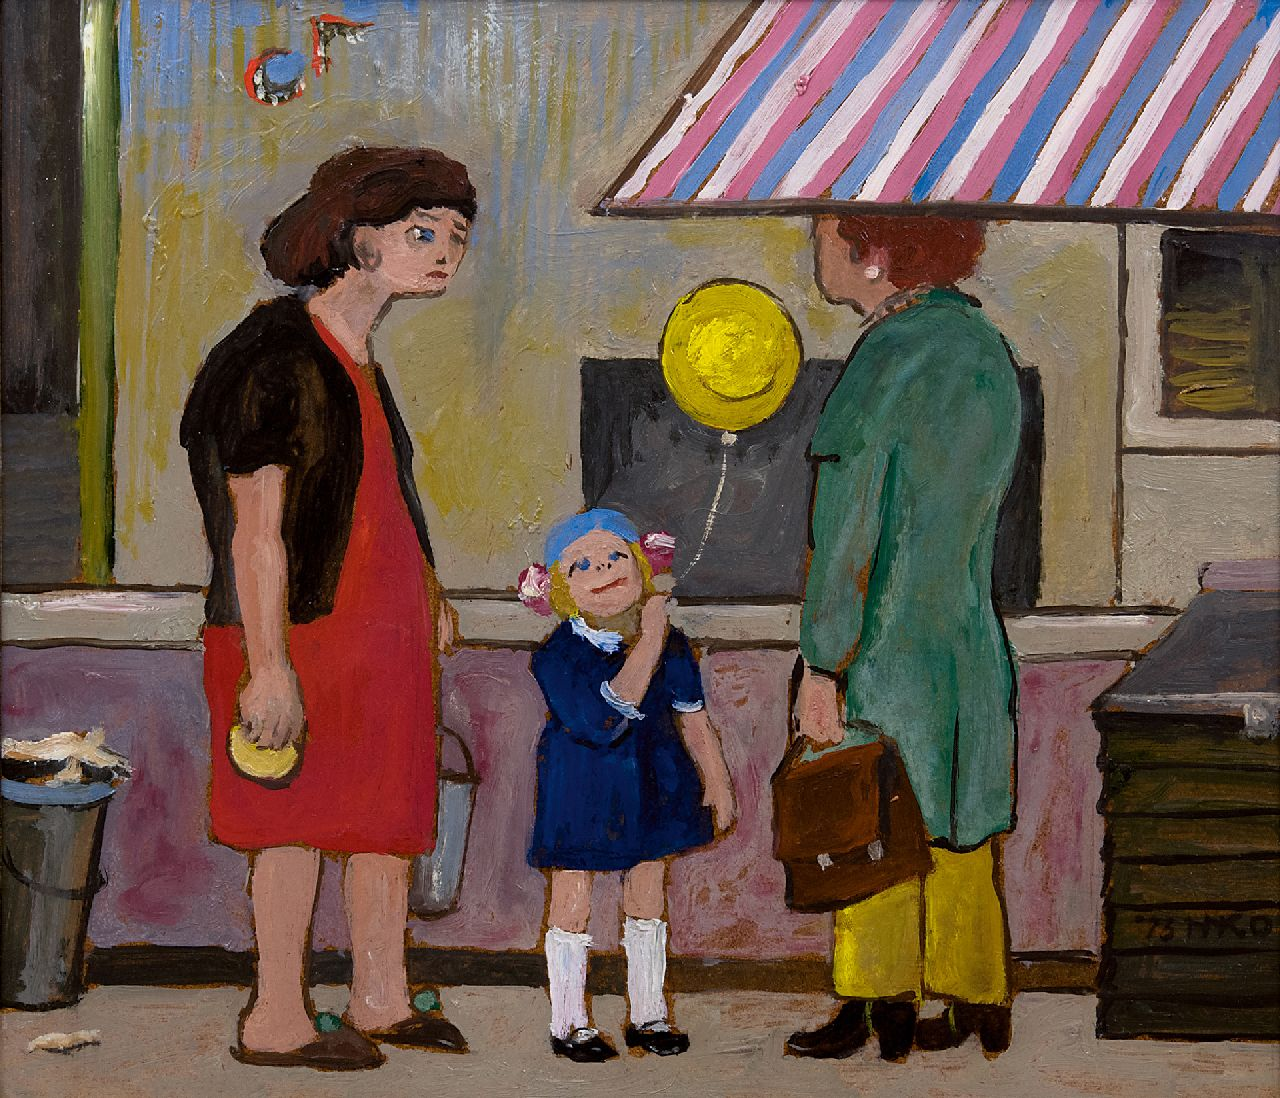 Kamerlingh Onnes H.H.  | 'Harm' Henrick Kamerlingh Onnes | Paintings offered for sale | The yellow balloon, oil on board 26.7 x 31.6 cm, signed l.r. with monogram and dated '73